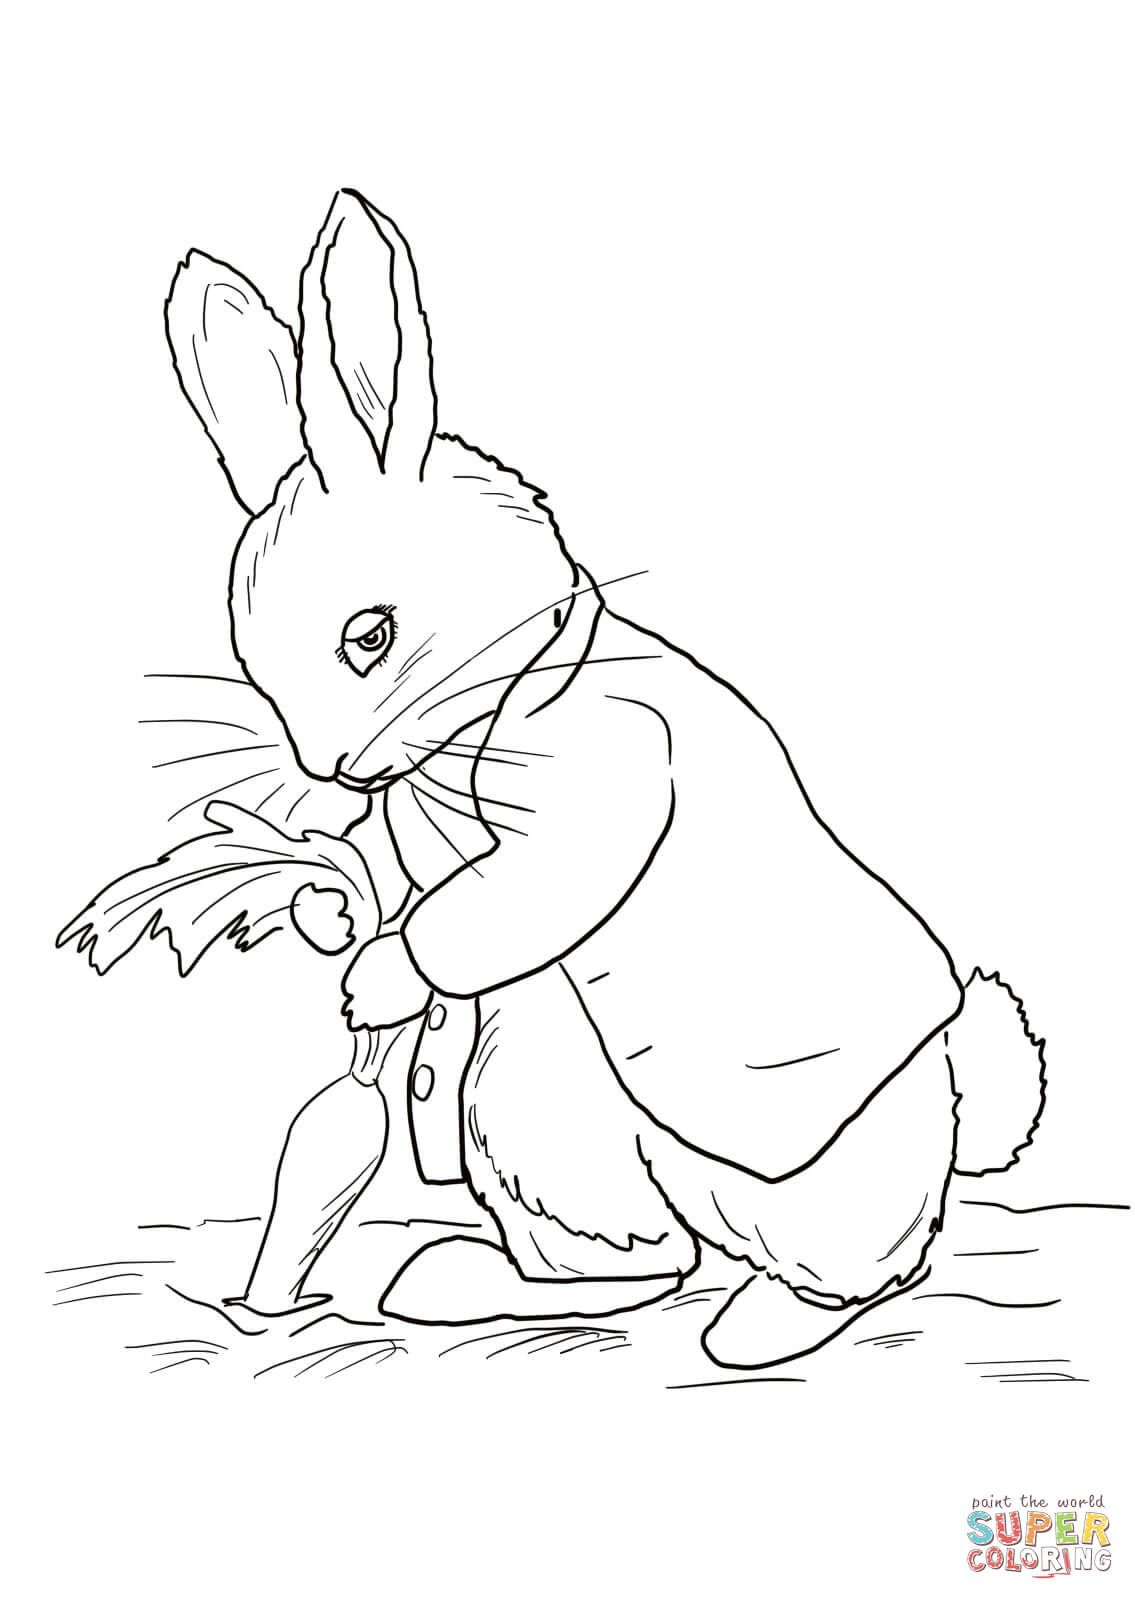 Peter rabbit coloring pages - coloringtop.com | Embroidery/ animals ...